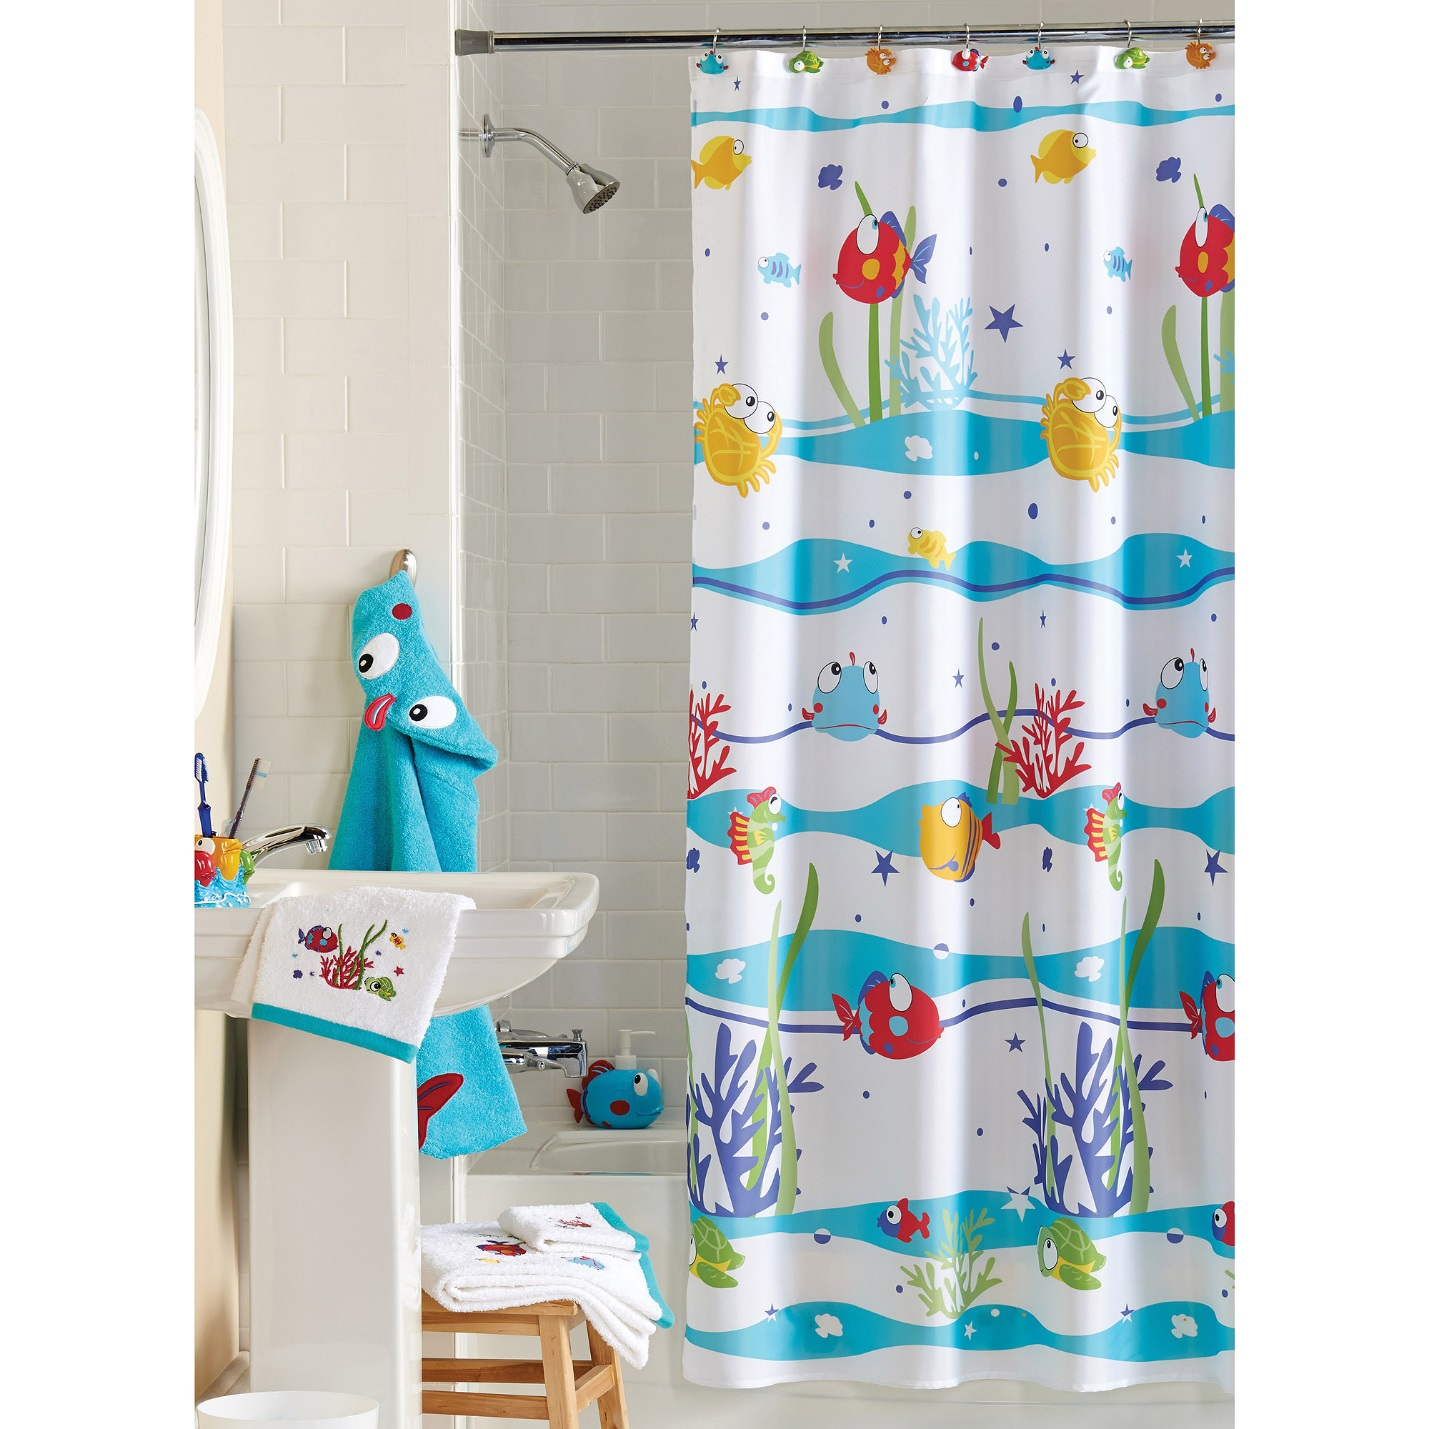 Fun patterns or prints in shower curtains